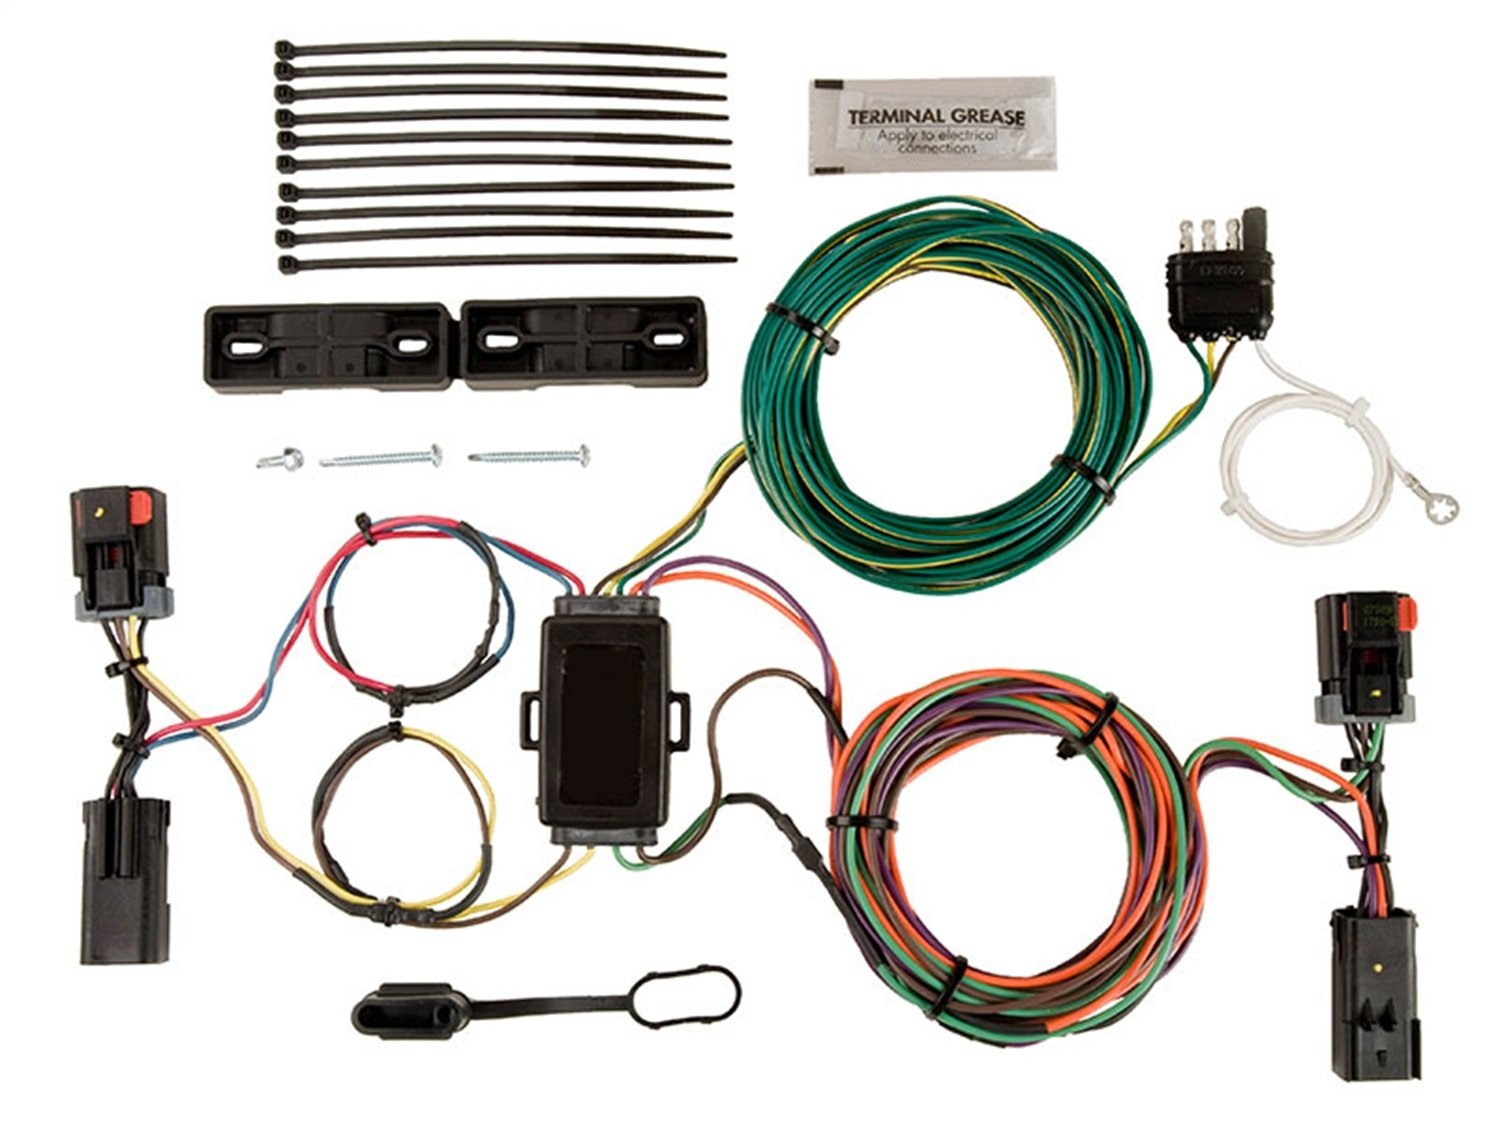 ox bx88276 ez light wiring harness kit trailer wire installation kitblue ox wiring harness wiring library rh yessisterjazzsister nl